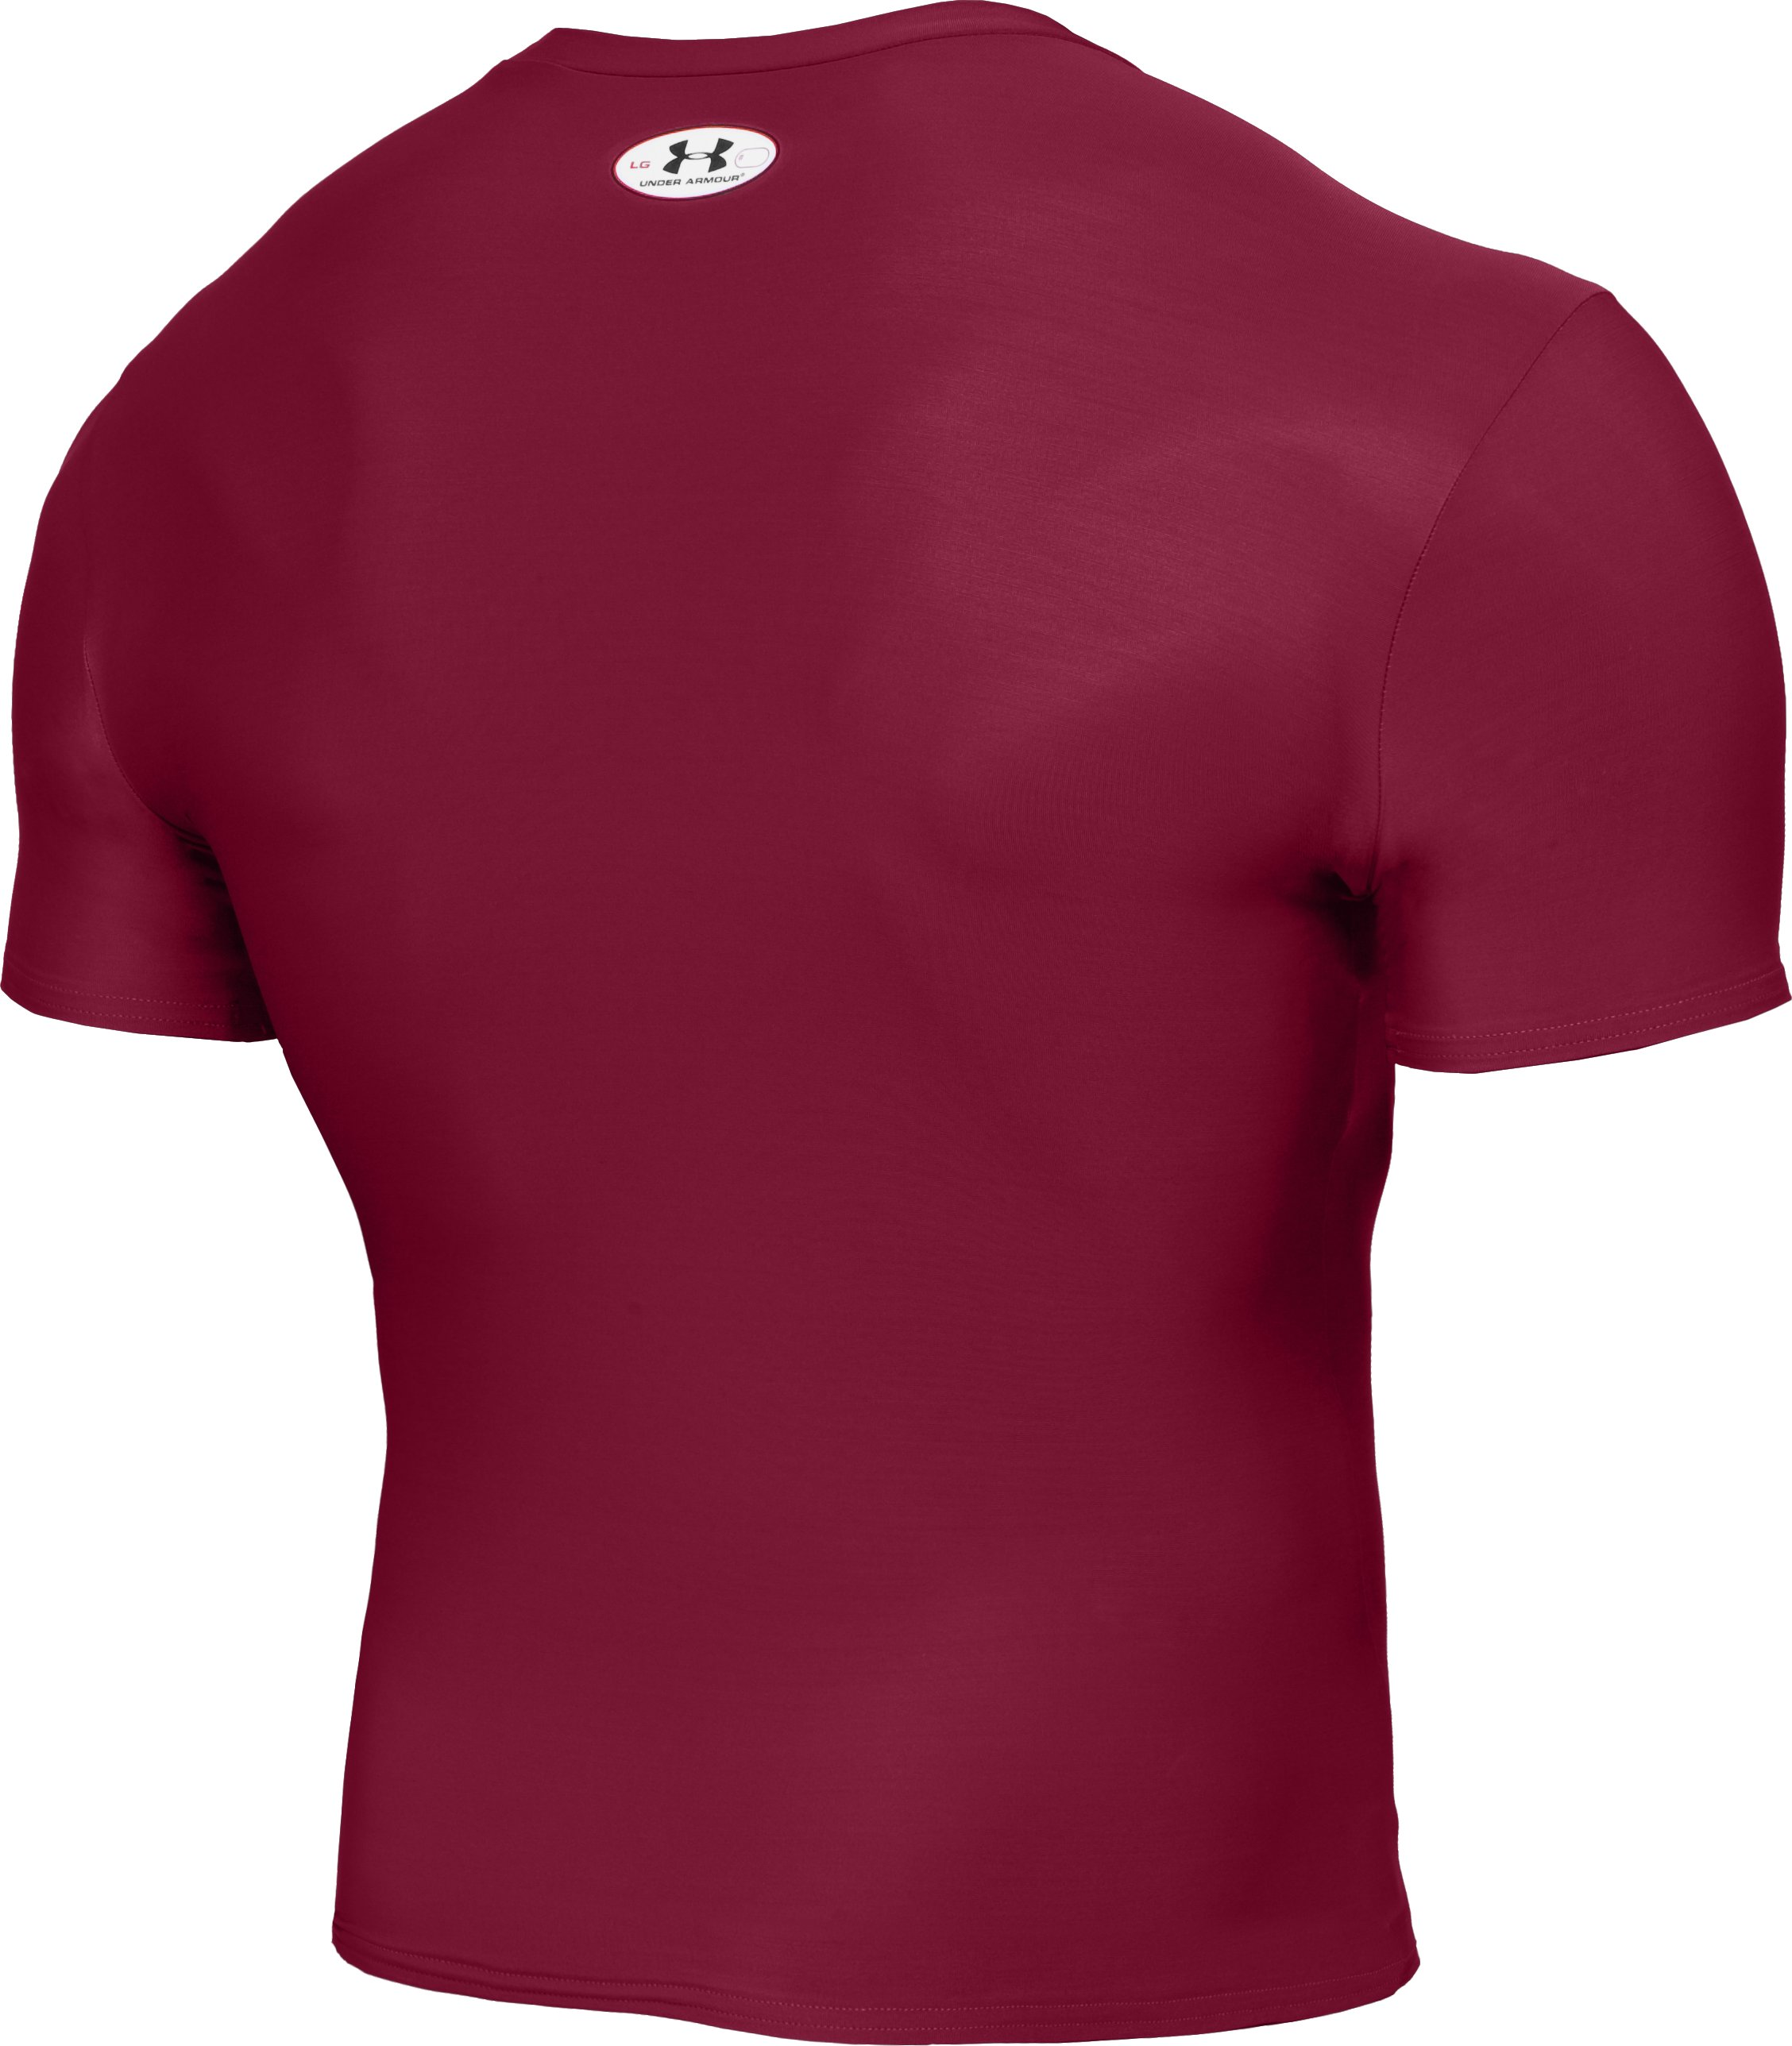 Men's HeatGear® Compression Short Sleeve T-Shirt, Maroon, undefined